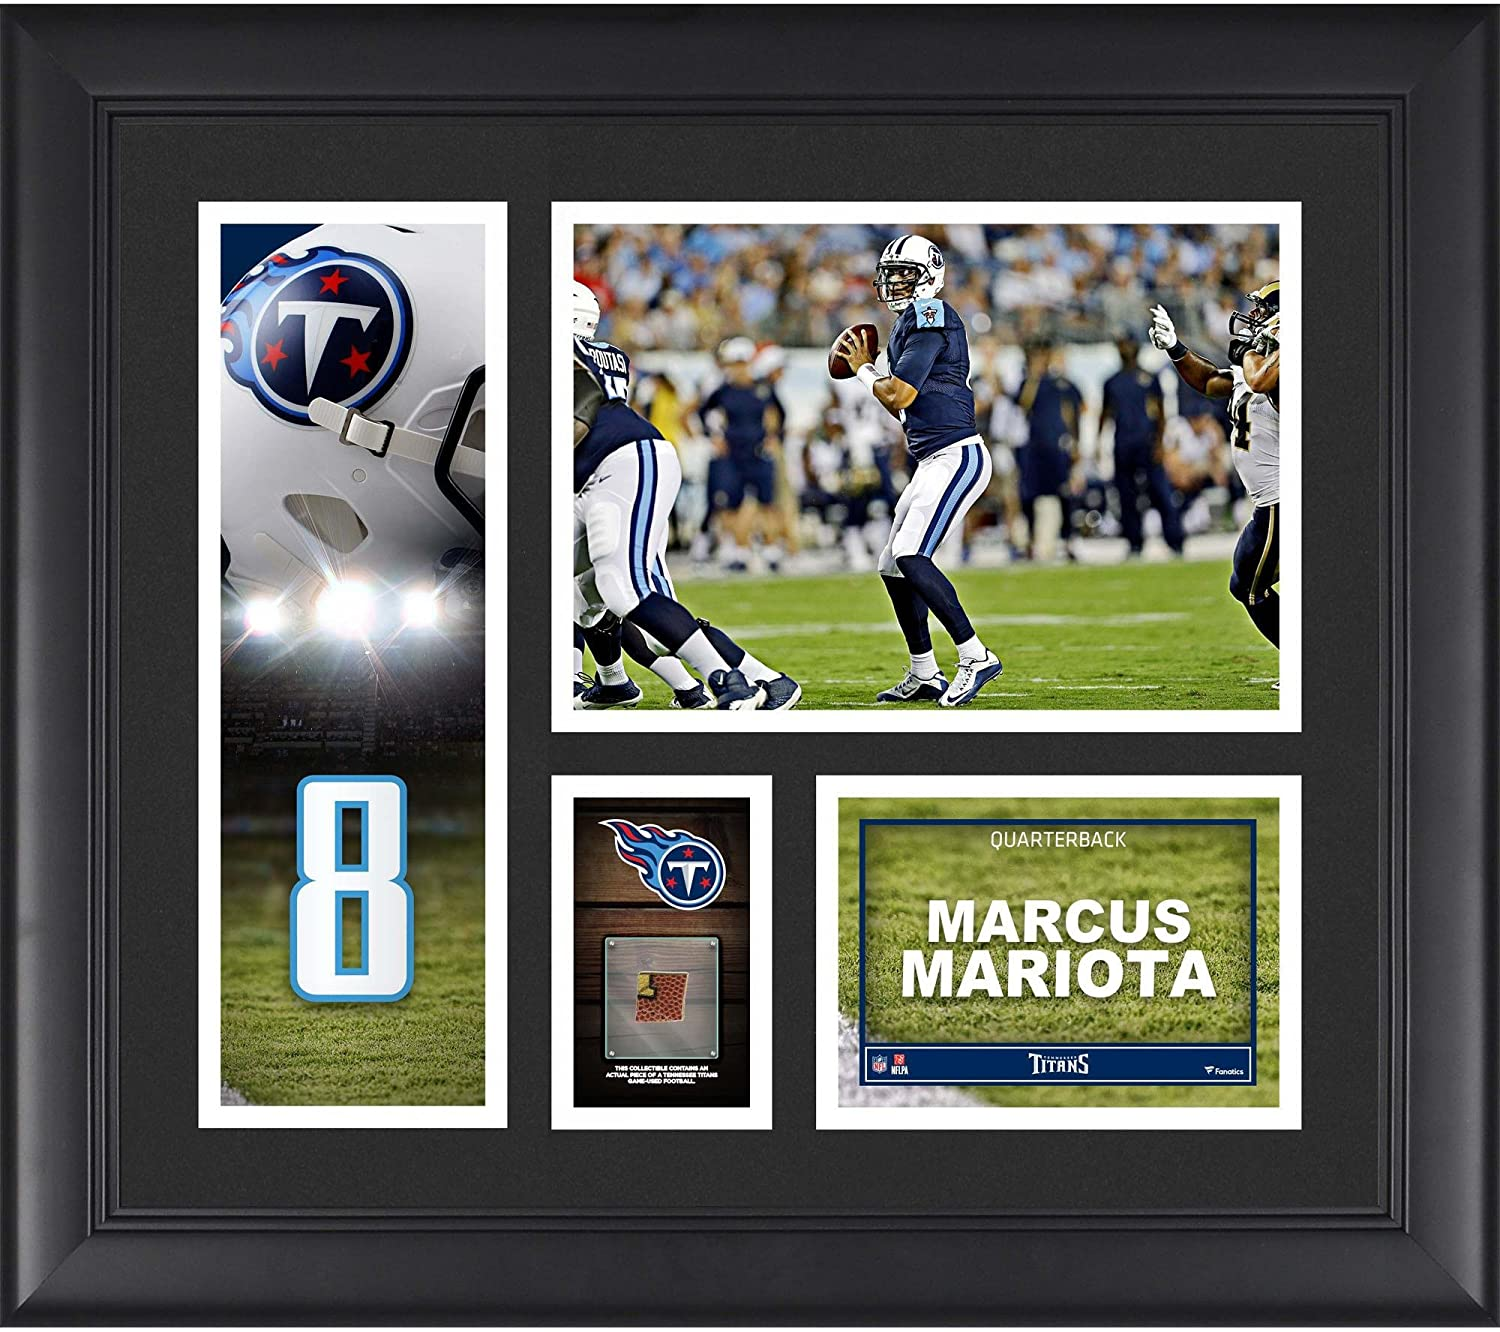 Marcus Mariota Tennessee Titans Framed 15 x 17 Player Collage with a Piece of Game-Used Football - NFL Player Plaques and Collages